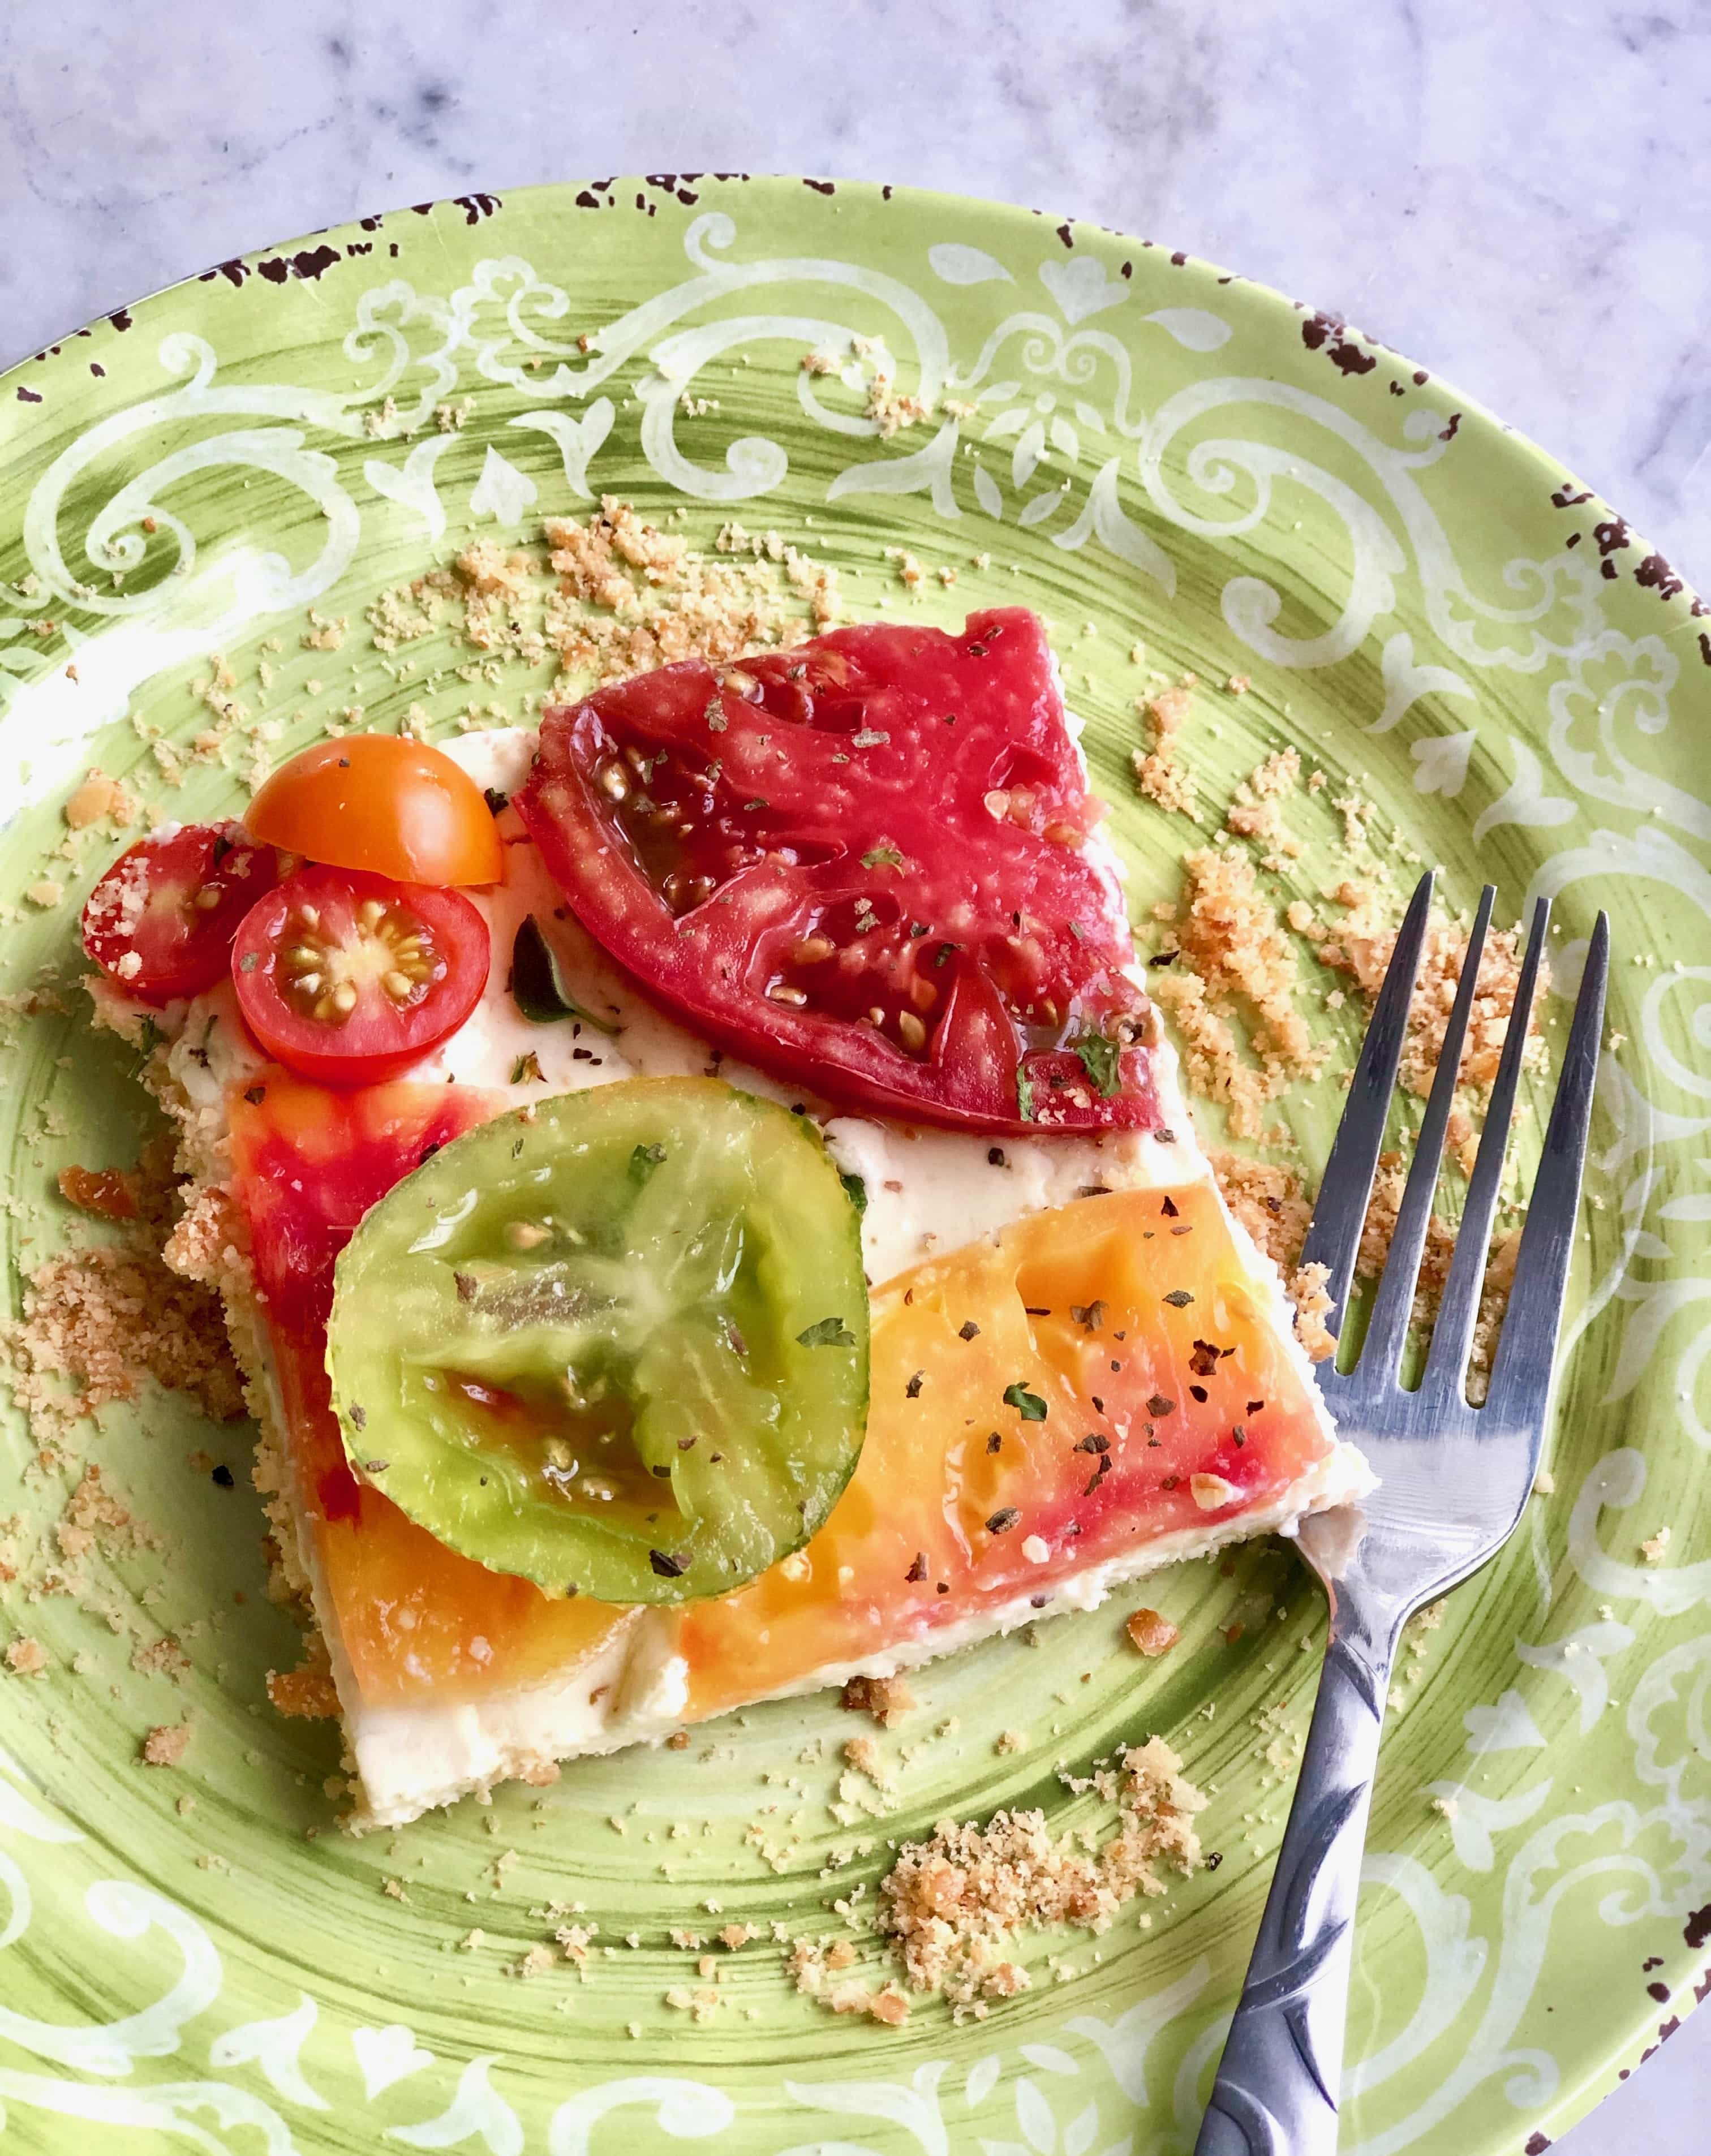 slice of tomato tart on a green plate